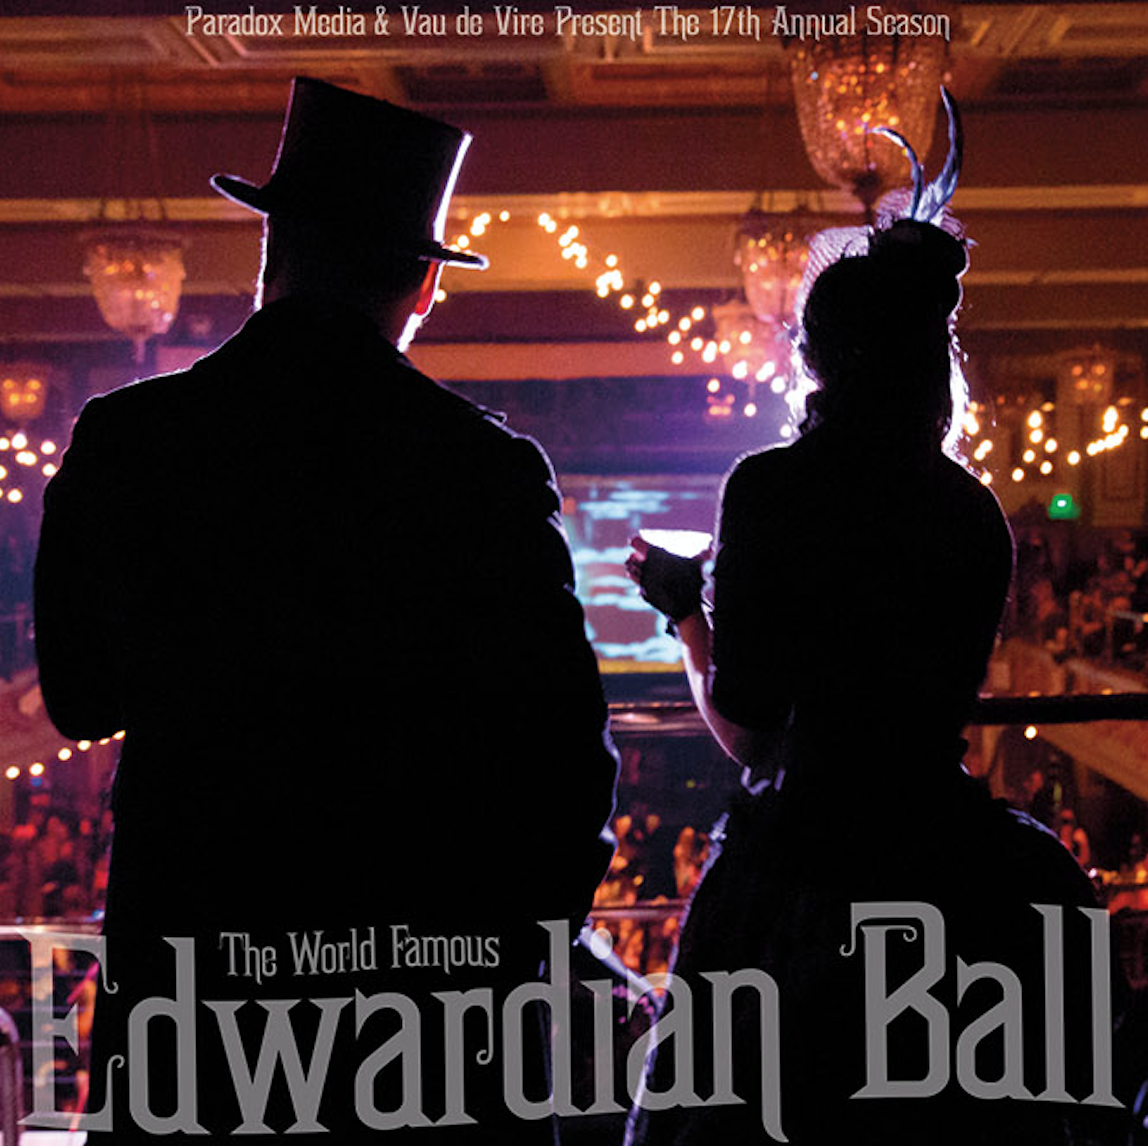 Edwardian Ball photo 17th annual